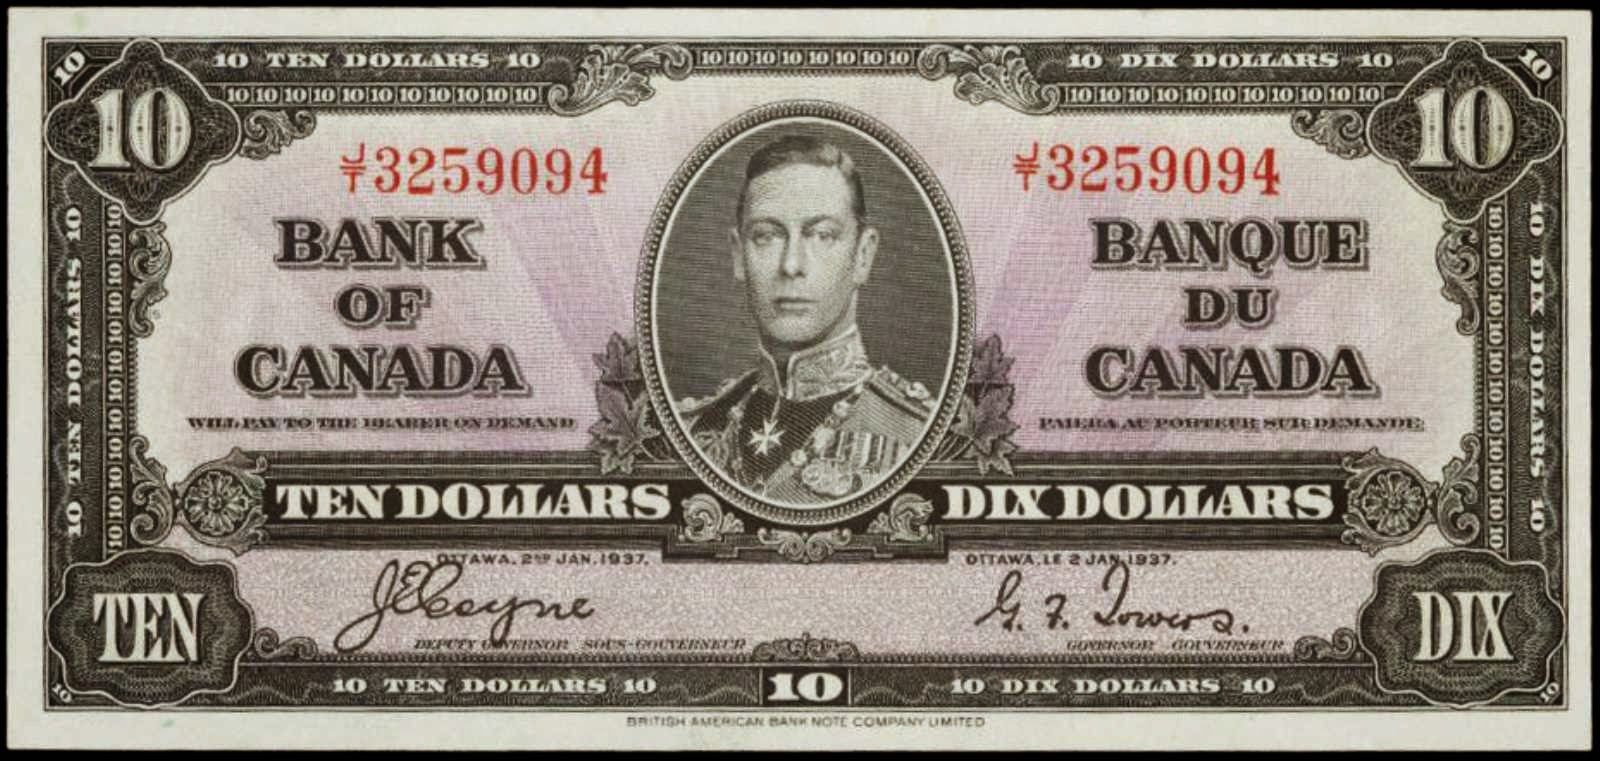 Bank Of Canada 1937 Ten Dollar Bill Canadian Money Bank Notes Canadian Coins